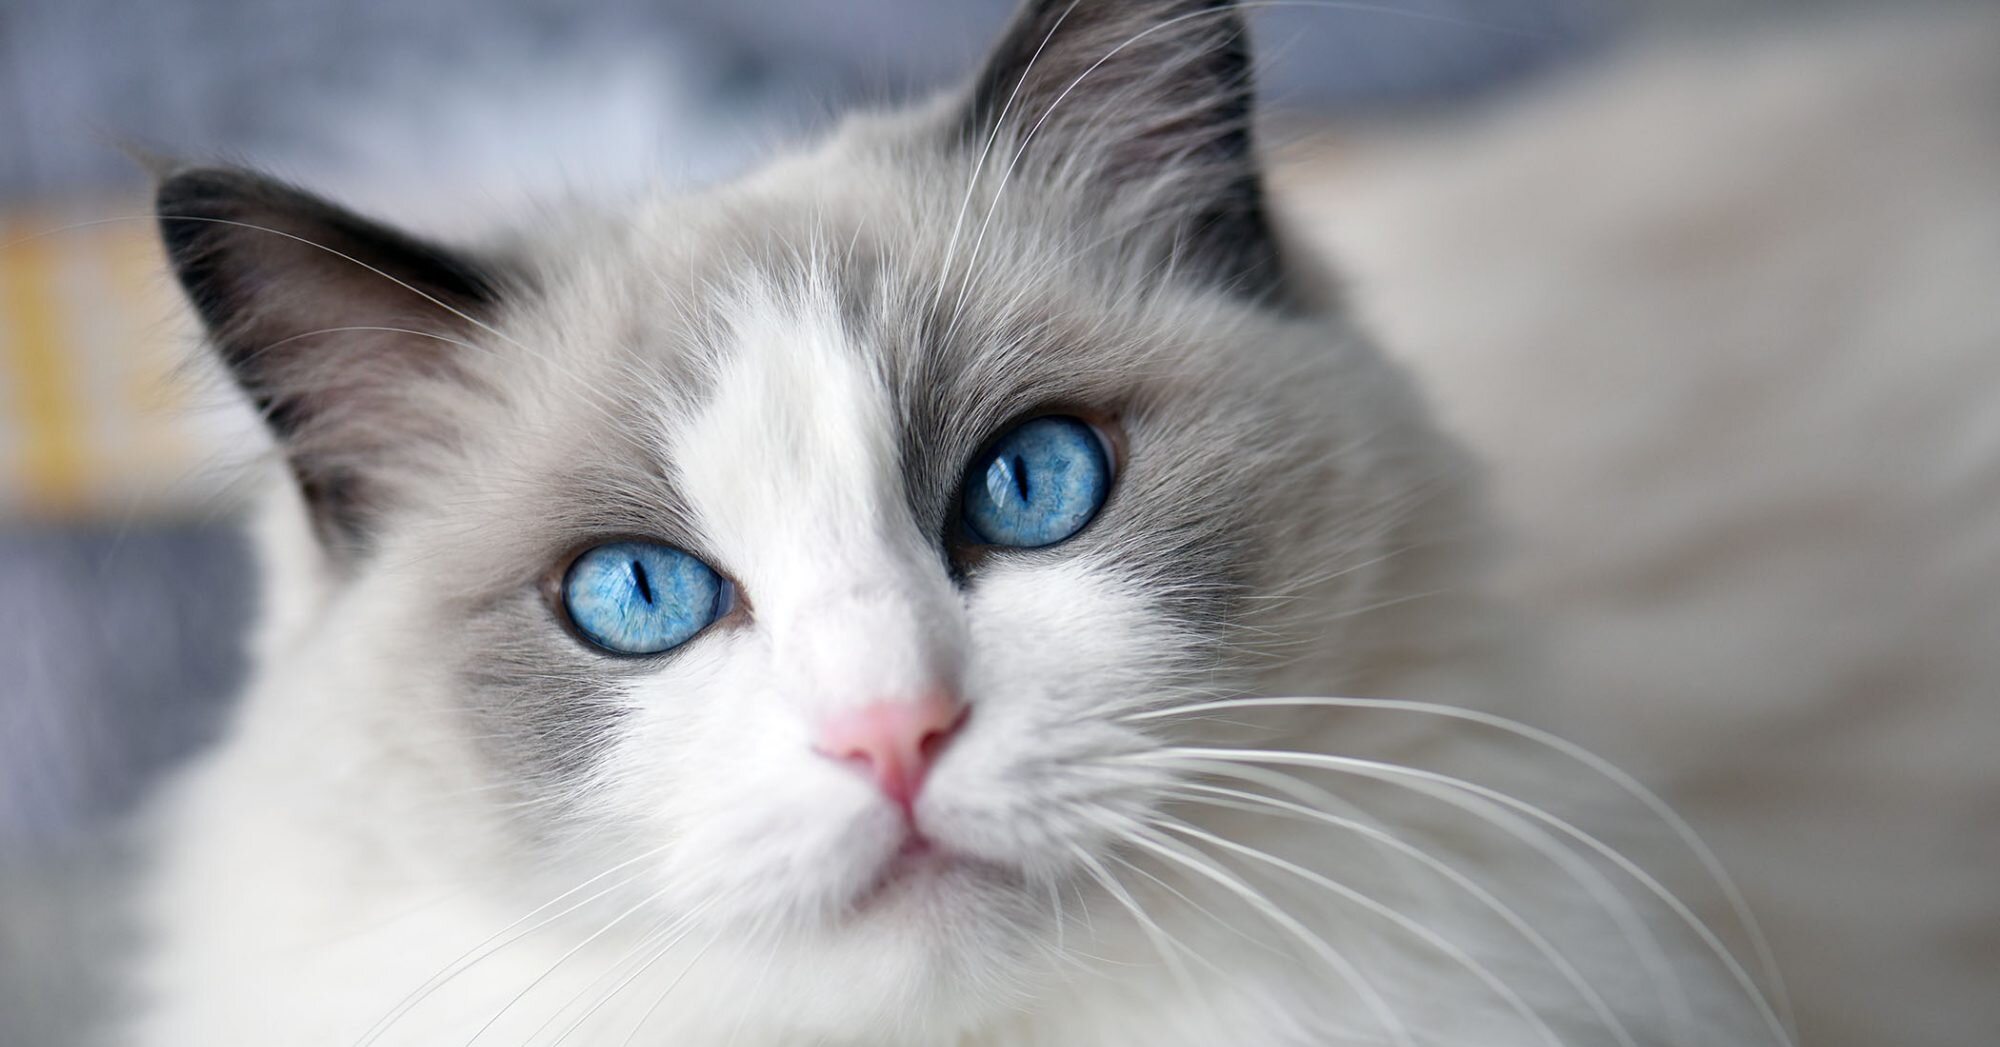 17 Long-Haired Cat Breeds to Swoon Over